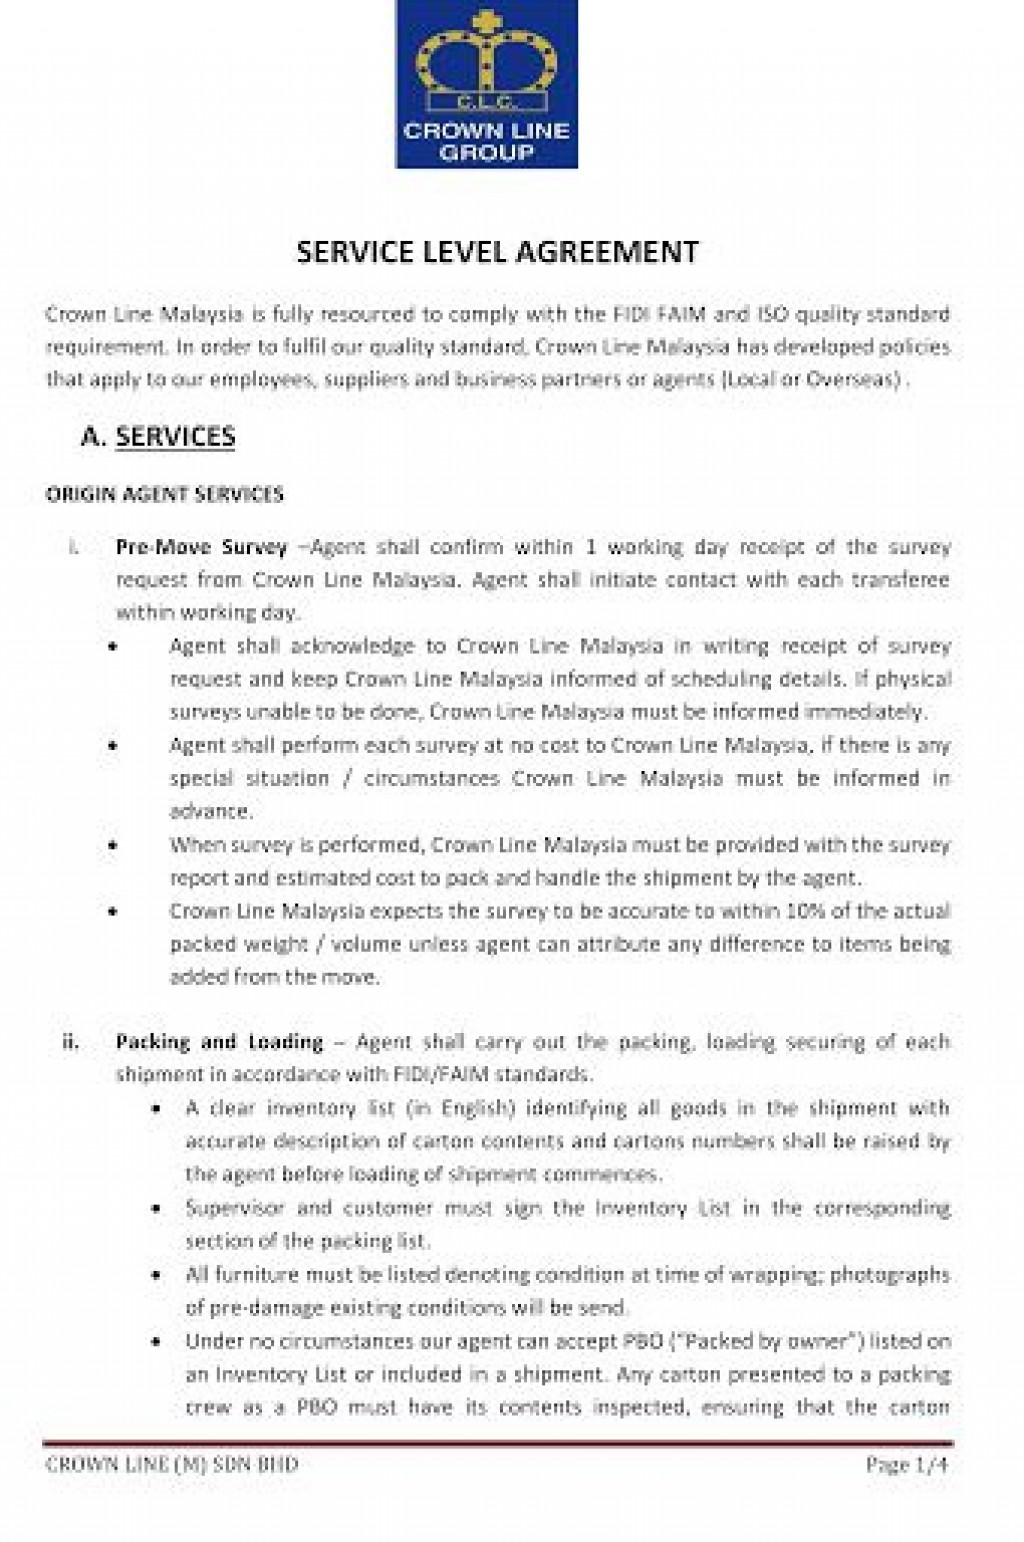 009 Outstanding Service Level Agreement Template Photo  South Africa Nz For Website DevelopmentLarge